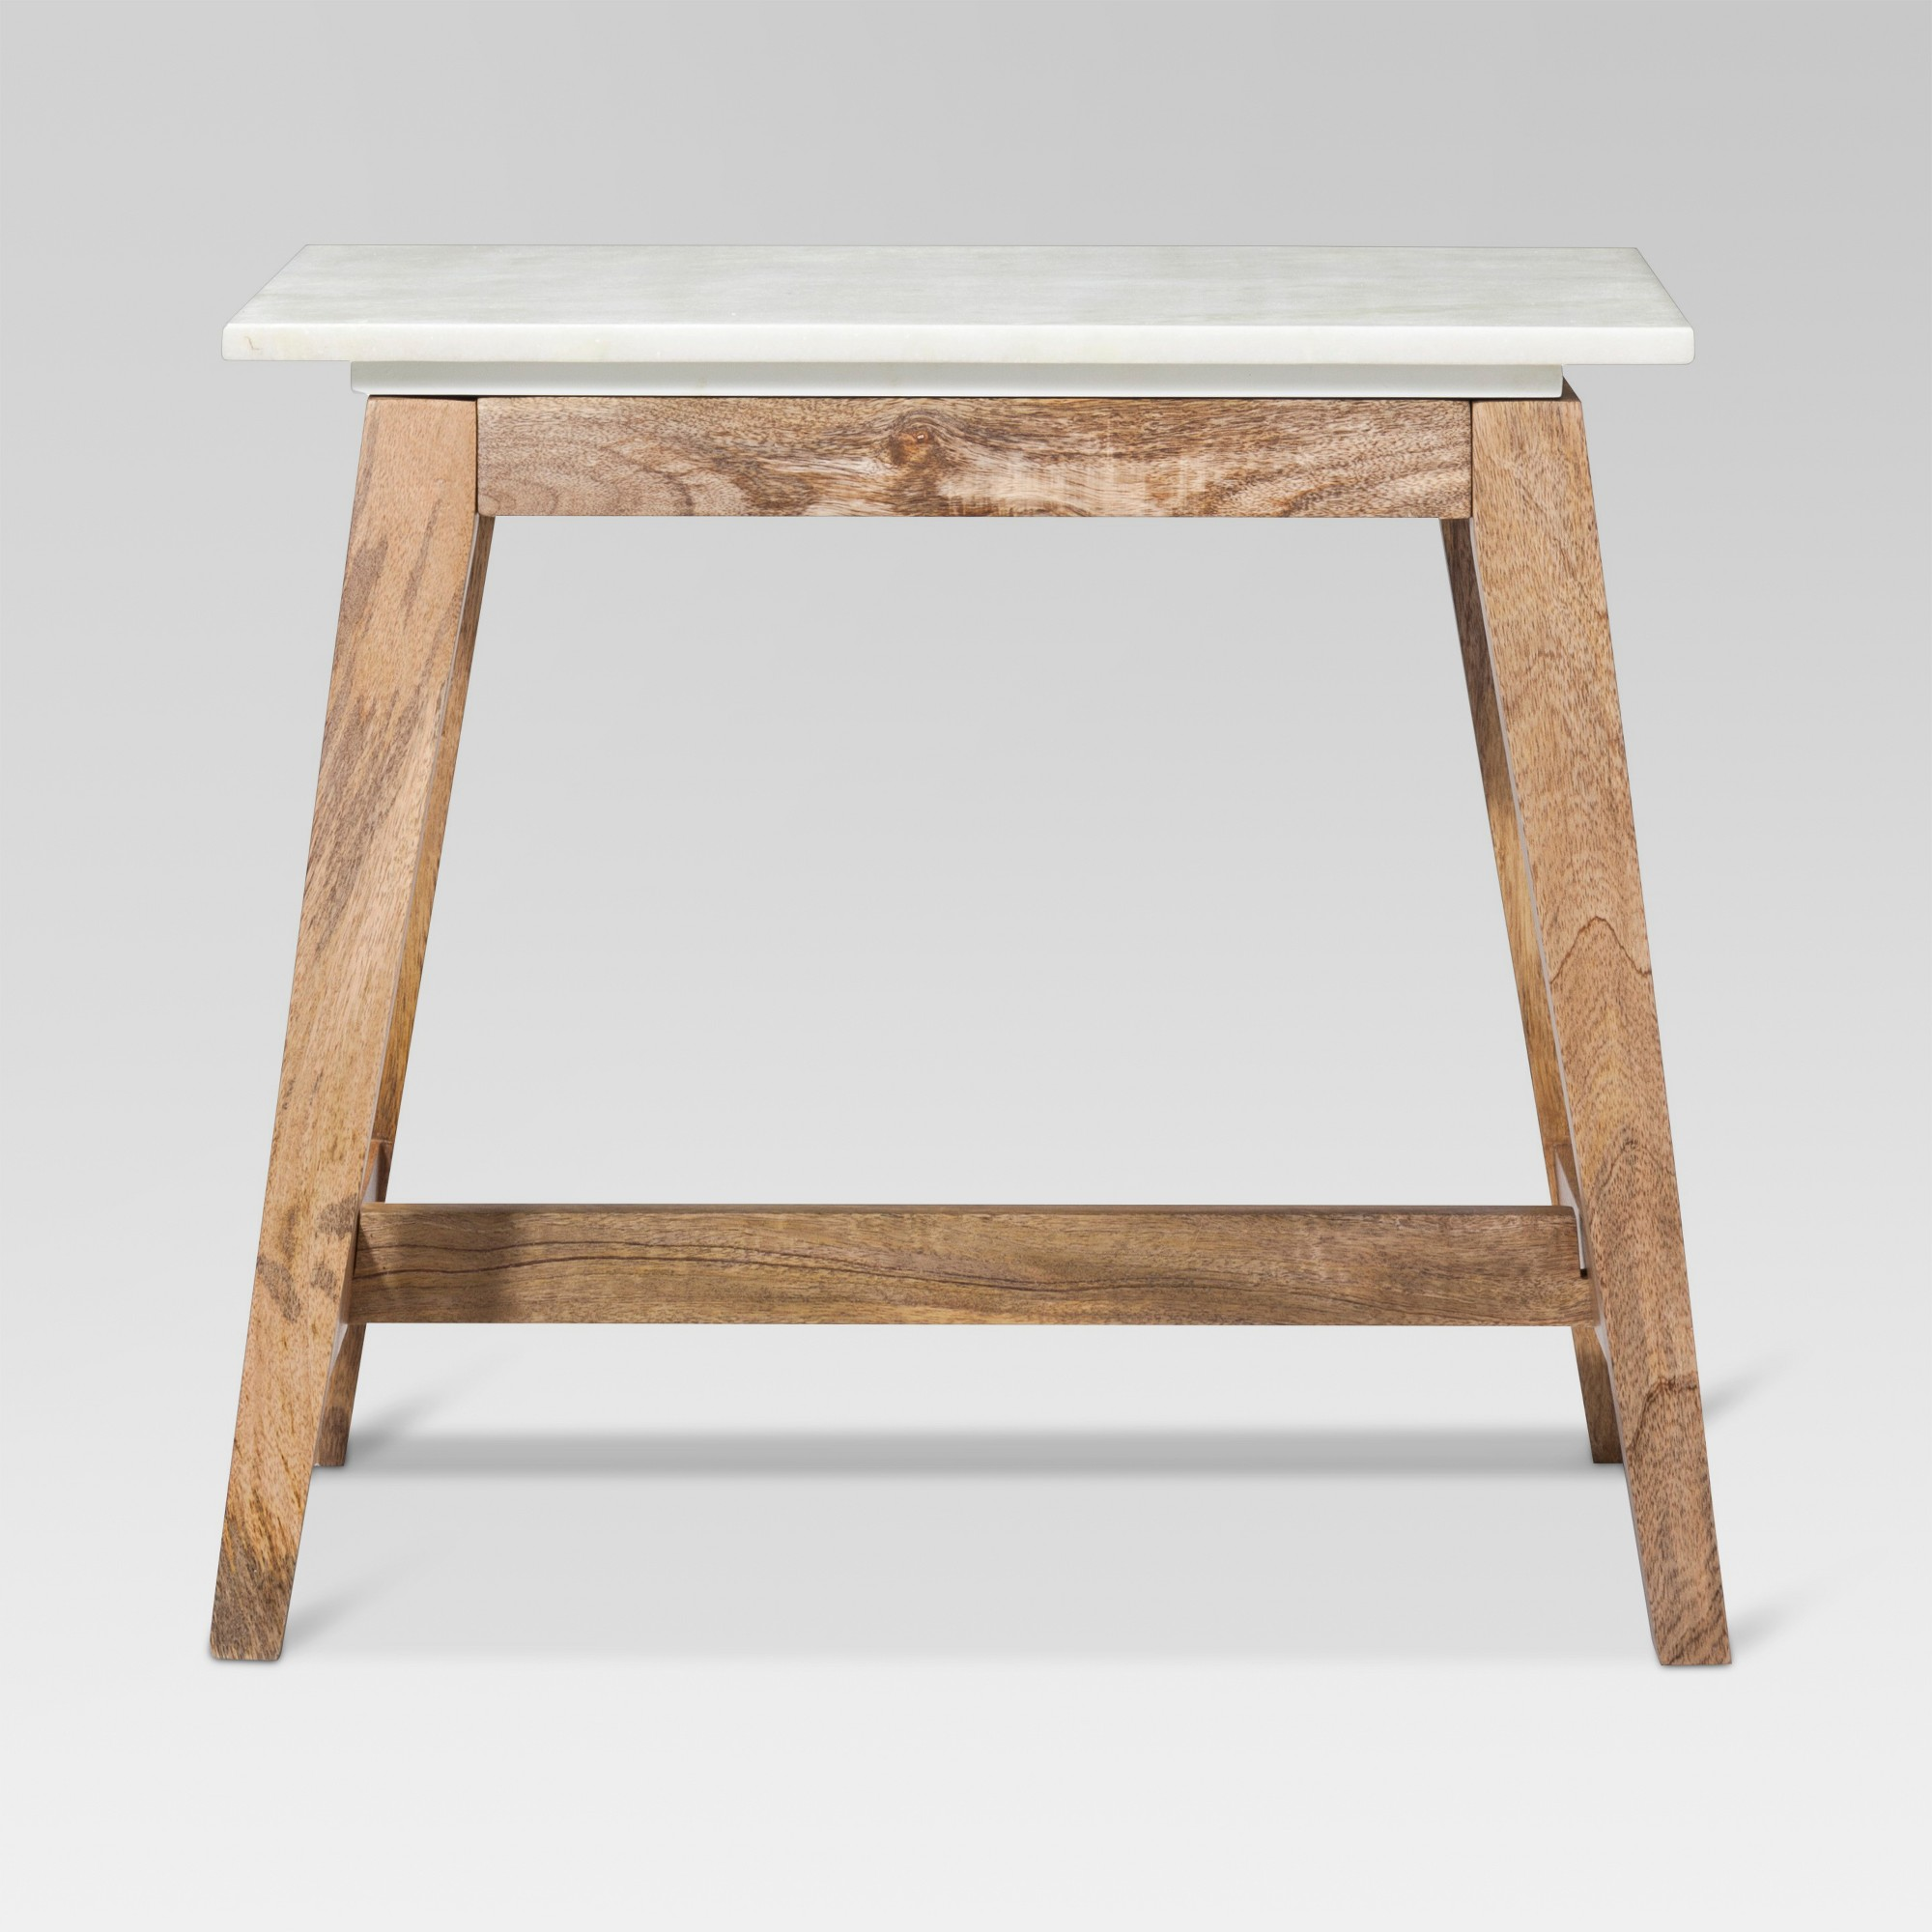 lanham accent table with marble top threshold wood mango mosaic bedside small couches for spaces tree stump end decoration ideas very pier one rattan dining set tablecloth oval